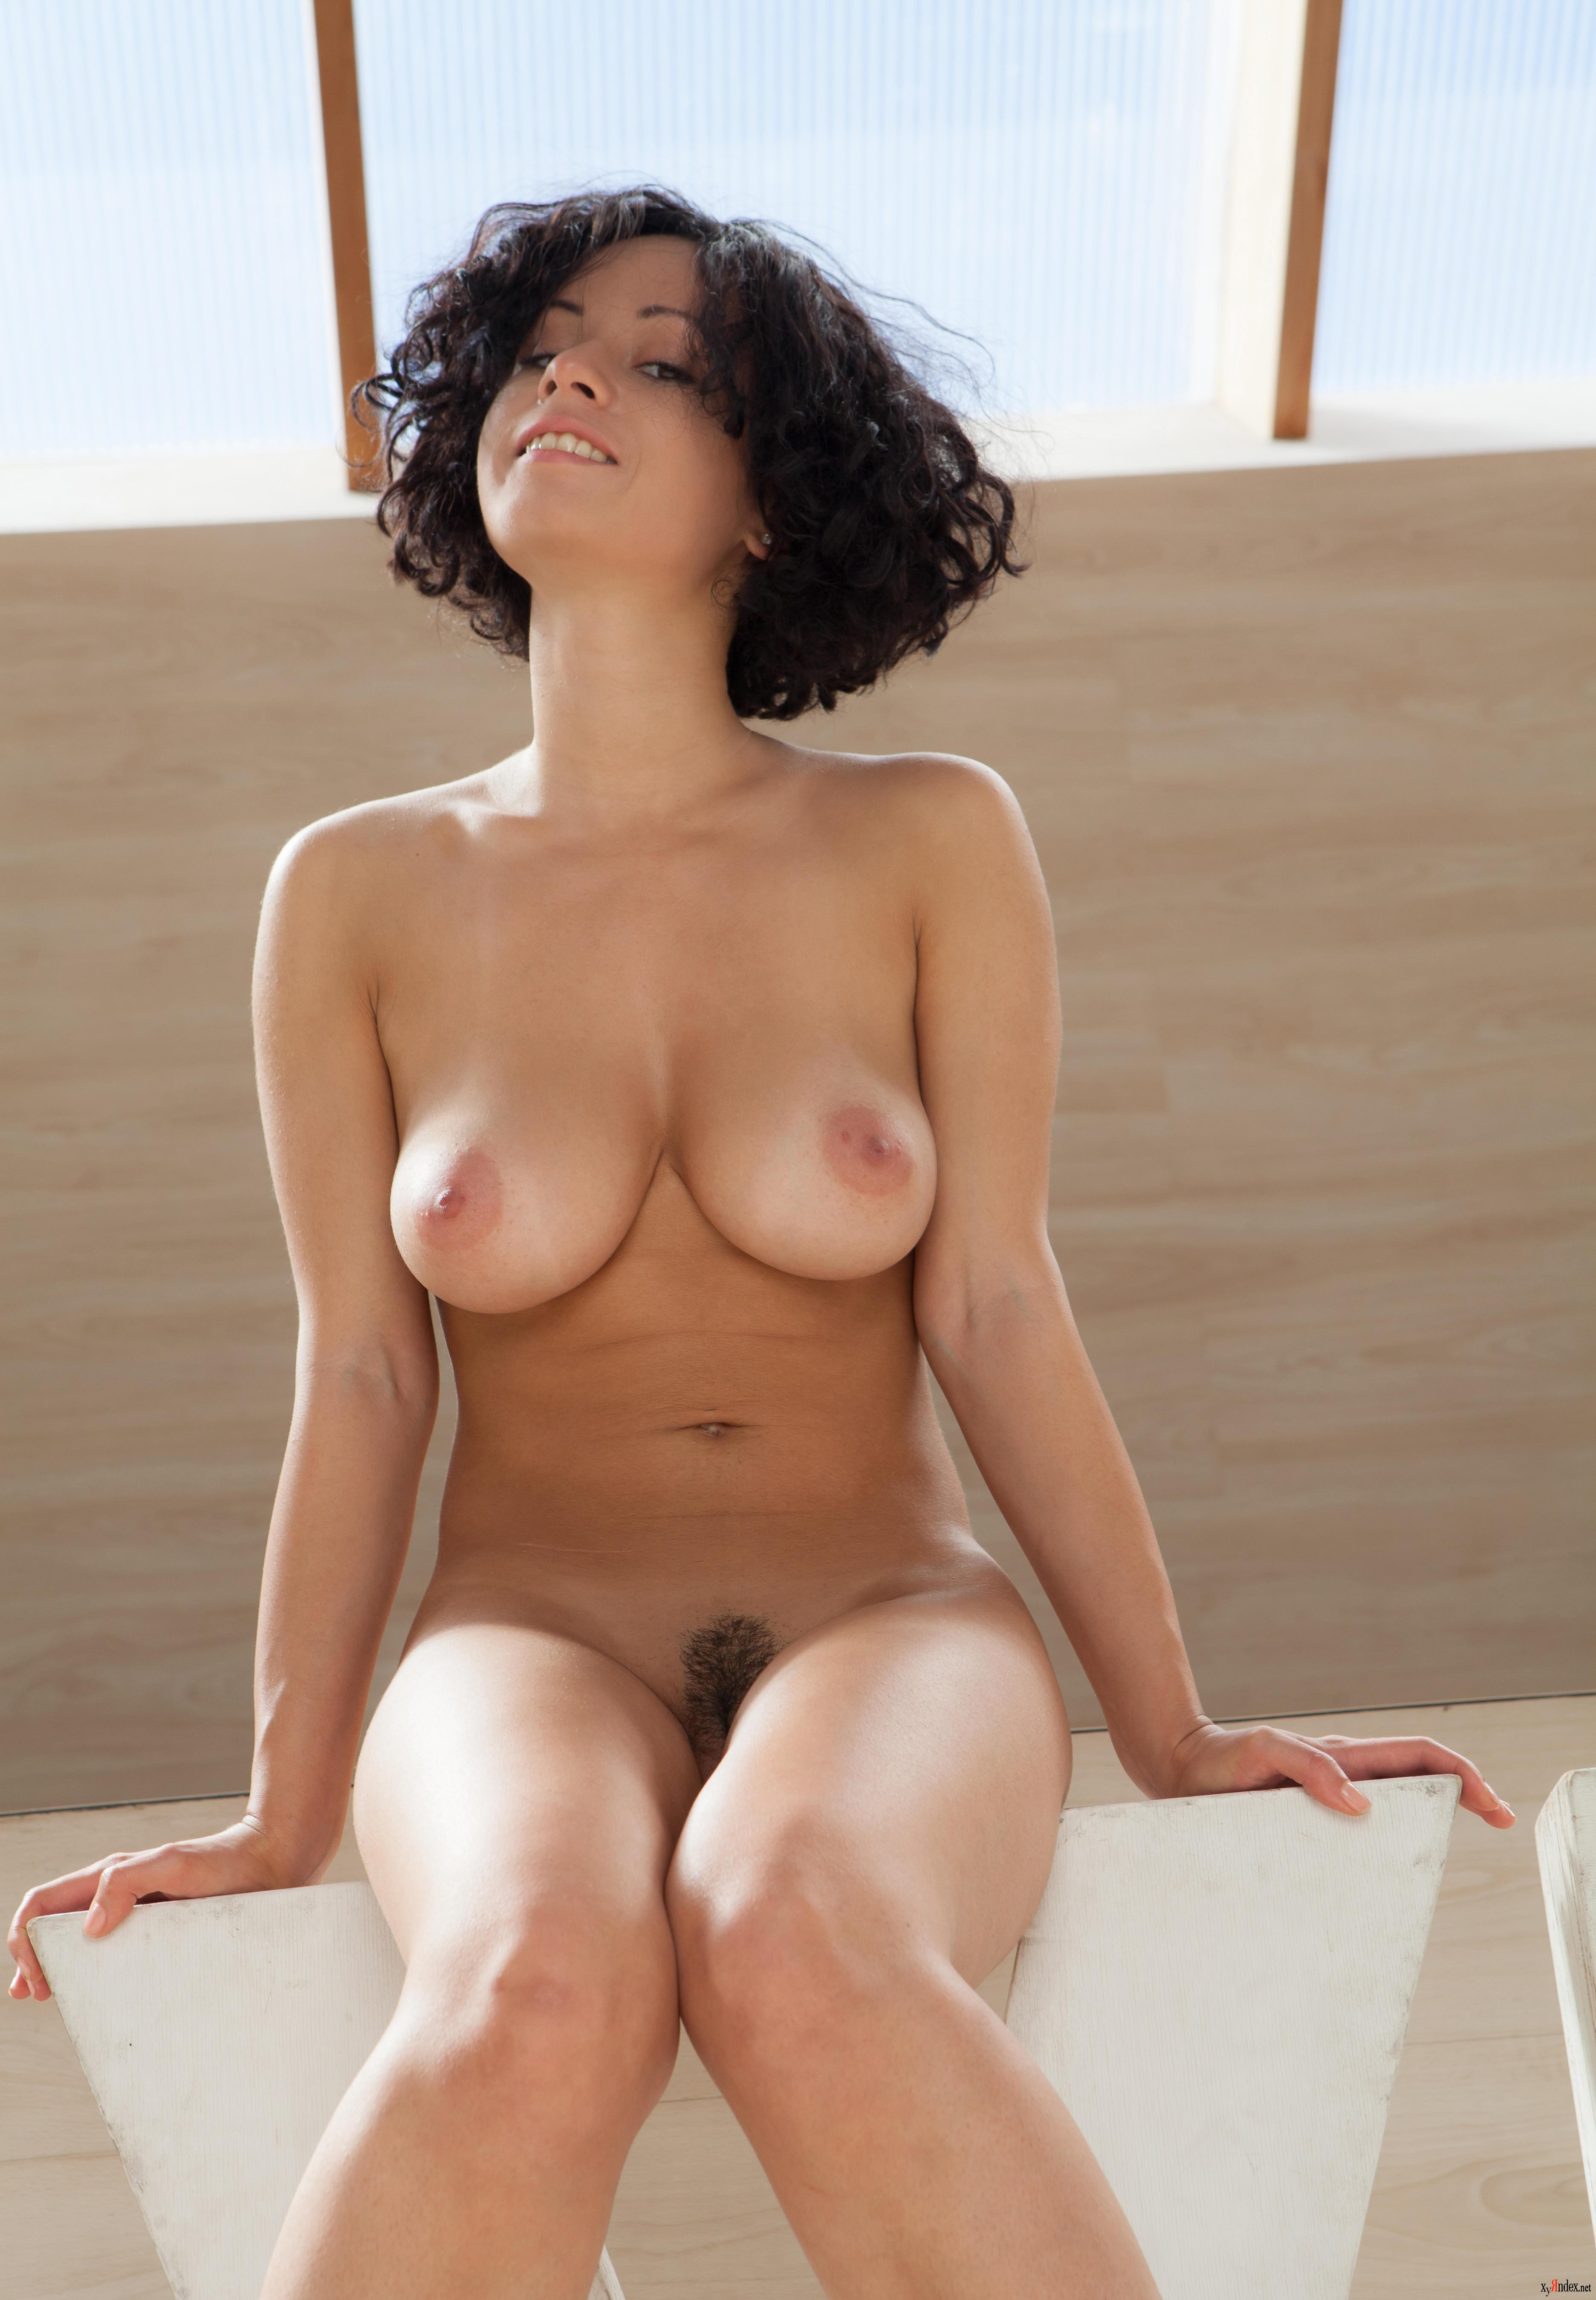 Thelifeerotic Pammie Lee Mentor Close Up Teenmegaworld Yes Porn Pics Xxx